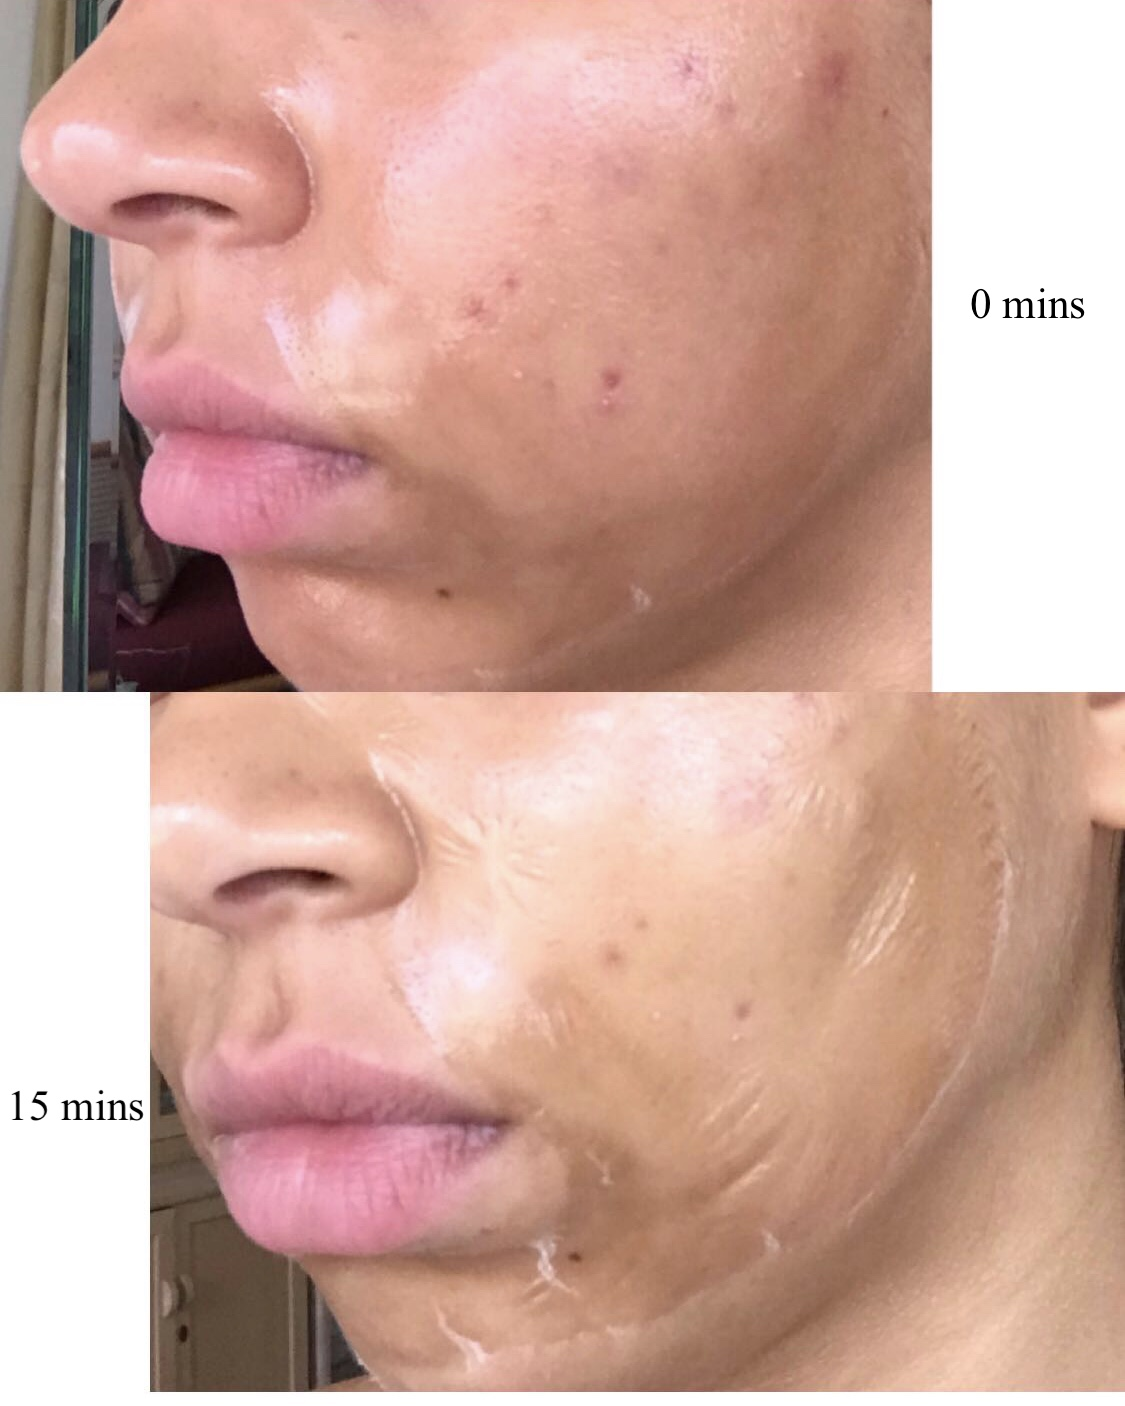 Some pictures online demonstrate a cracked skin appearance, but if you don't move your face at all, the cracks will barely appear